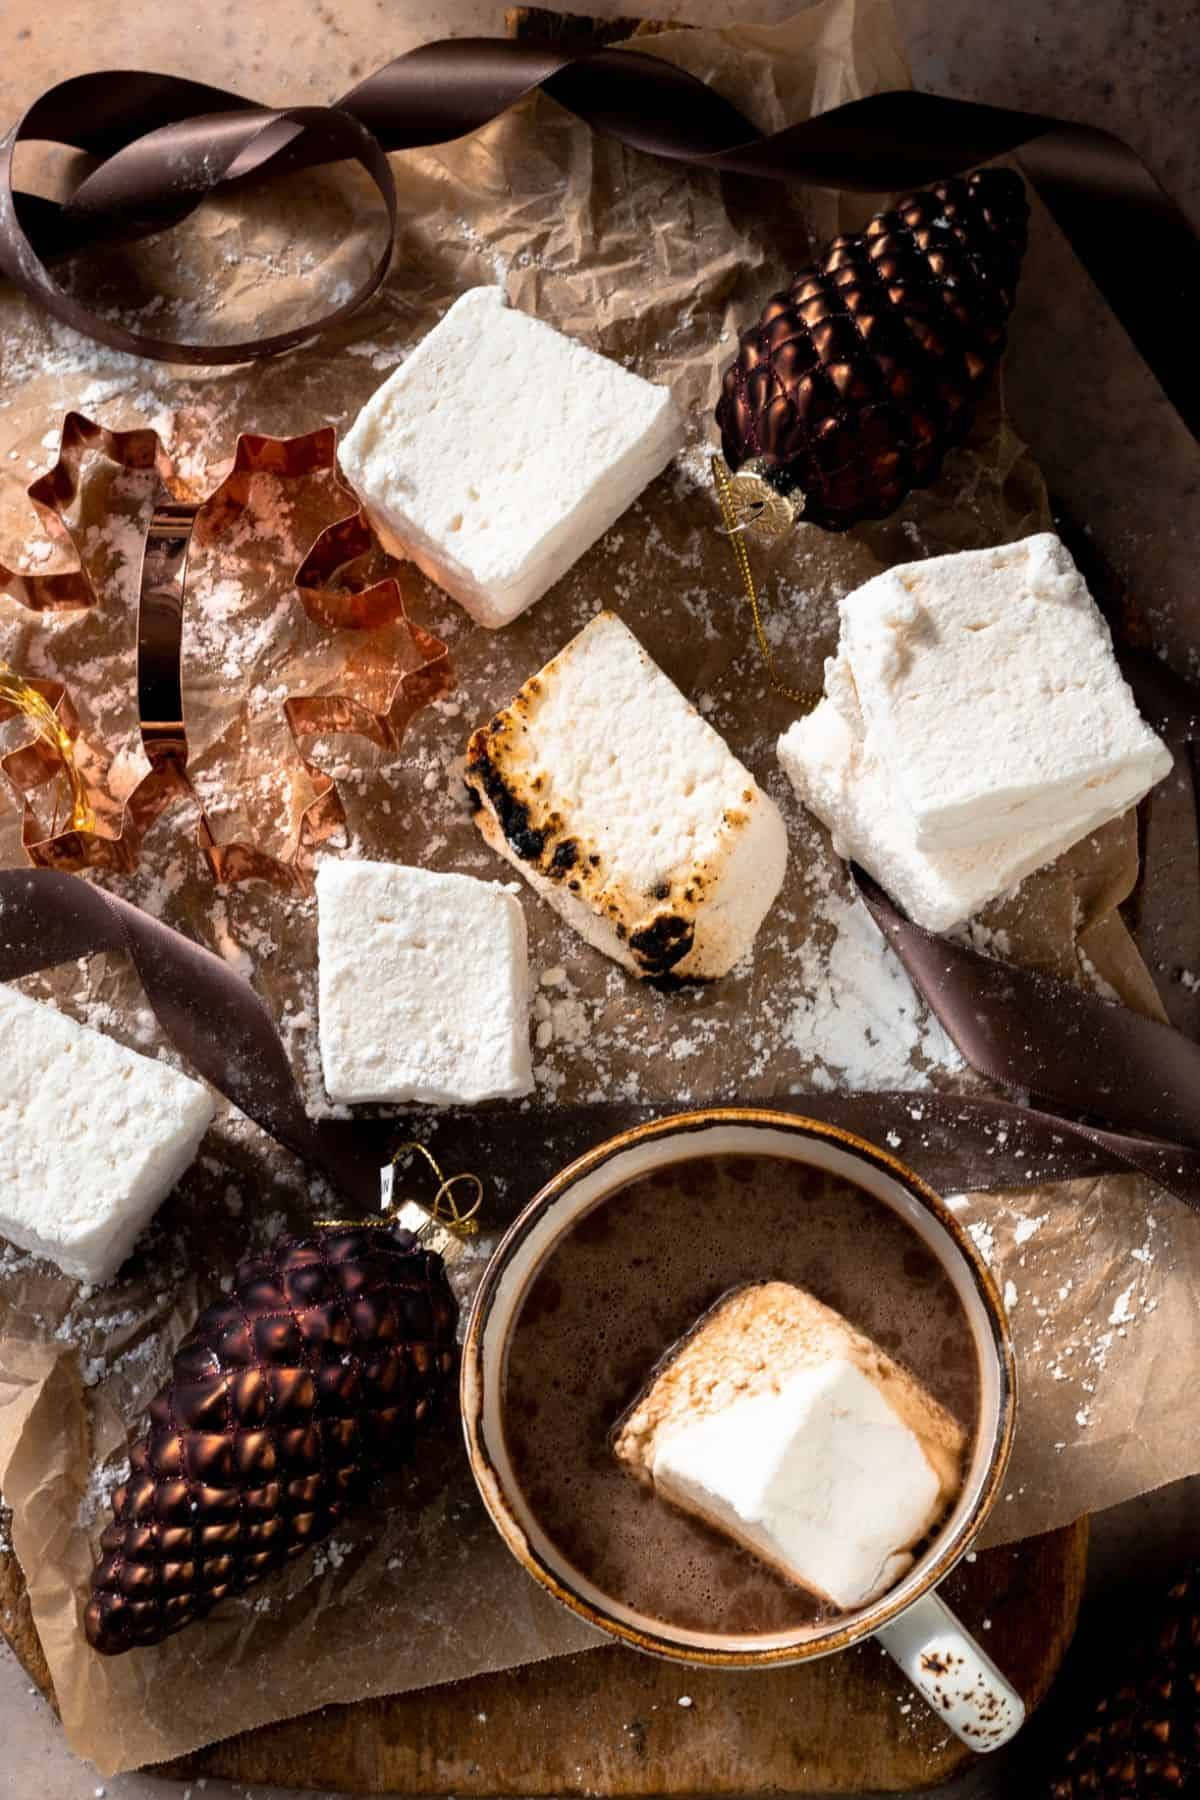 Homemade vegan marshmallows on parchment paper